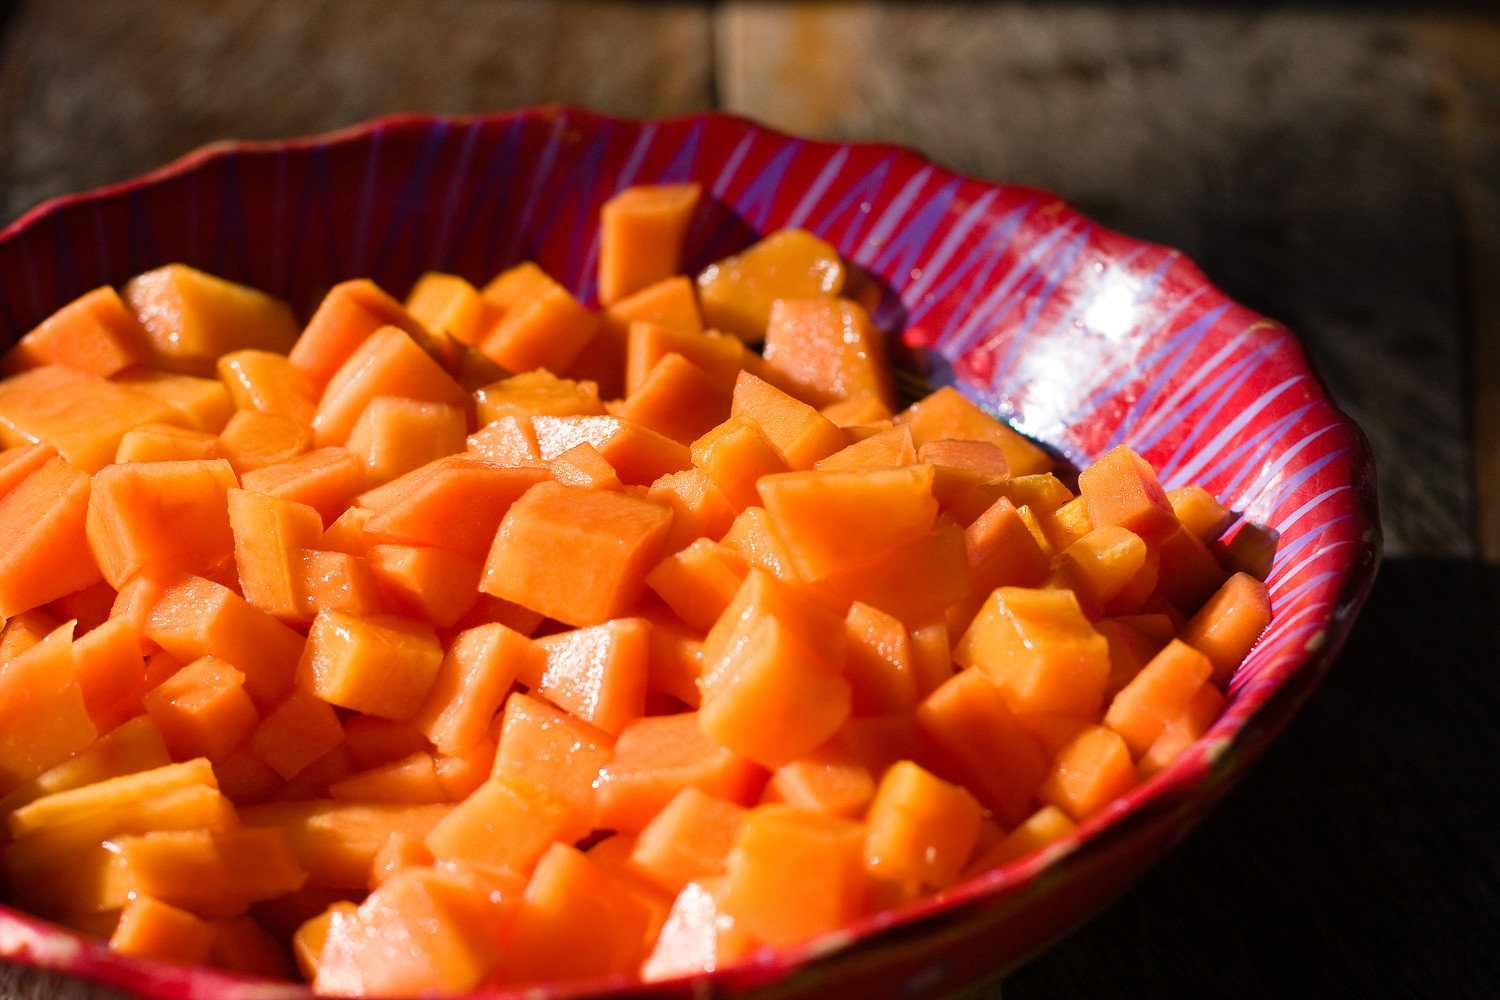 Papaya chunks in a red bowl in Cuba